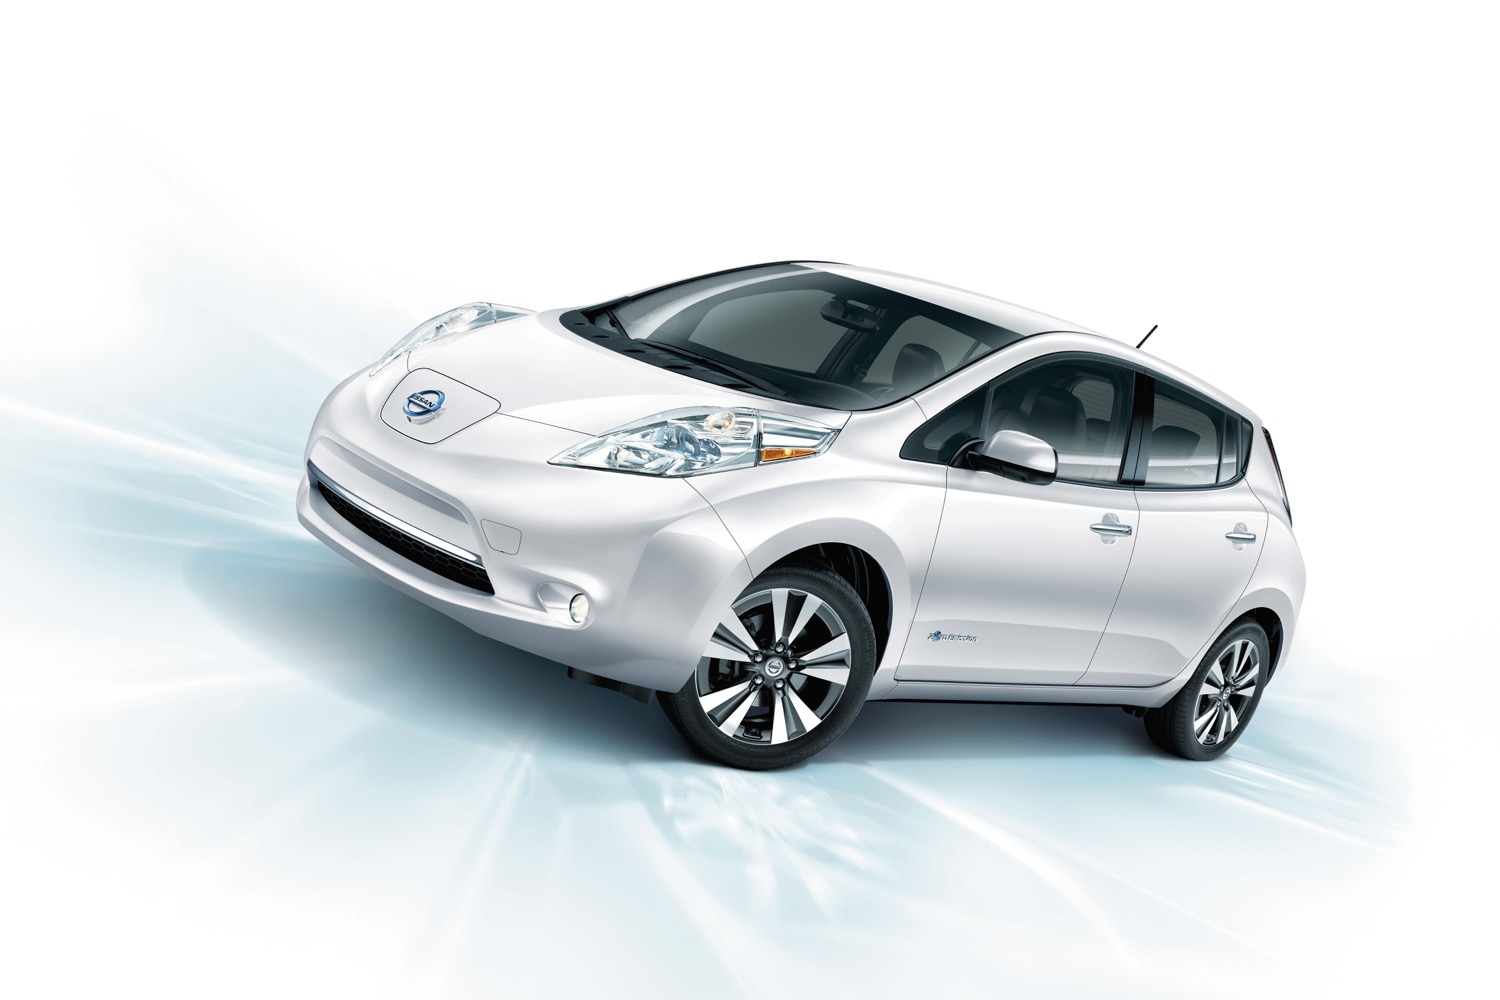 2017 nissan leaf specs all 30 kwh batteries otherwise unchanged. Black Bedroom Furniture Sets. Home Design Ideas